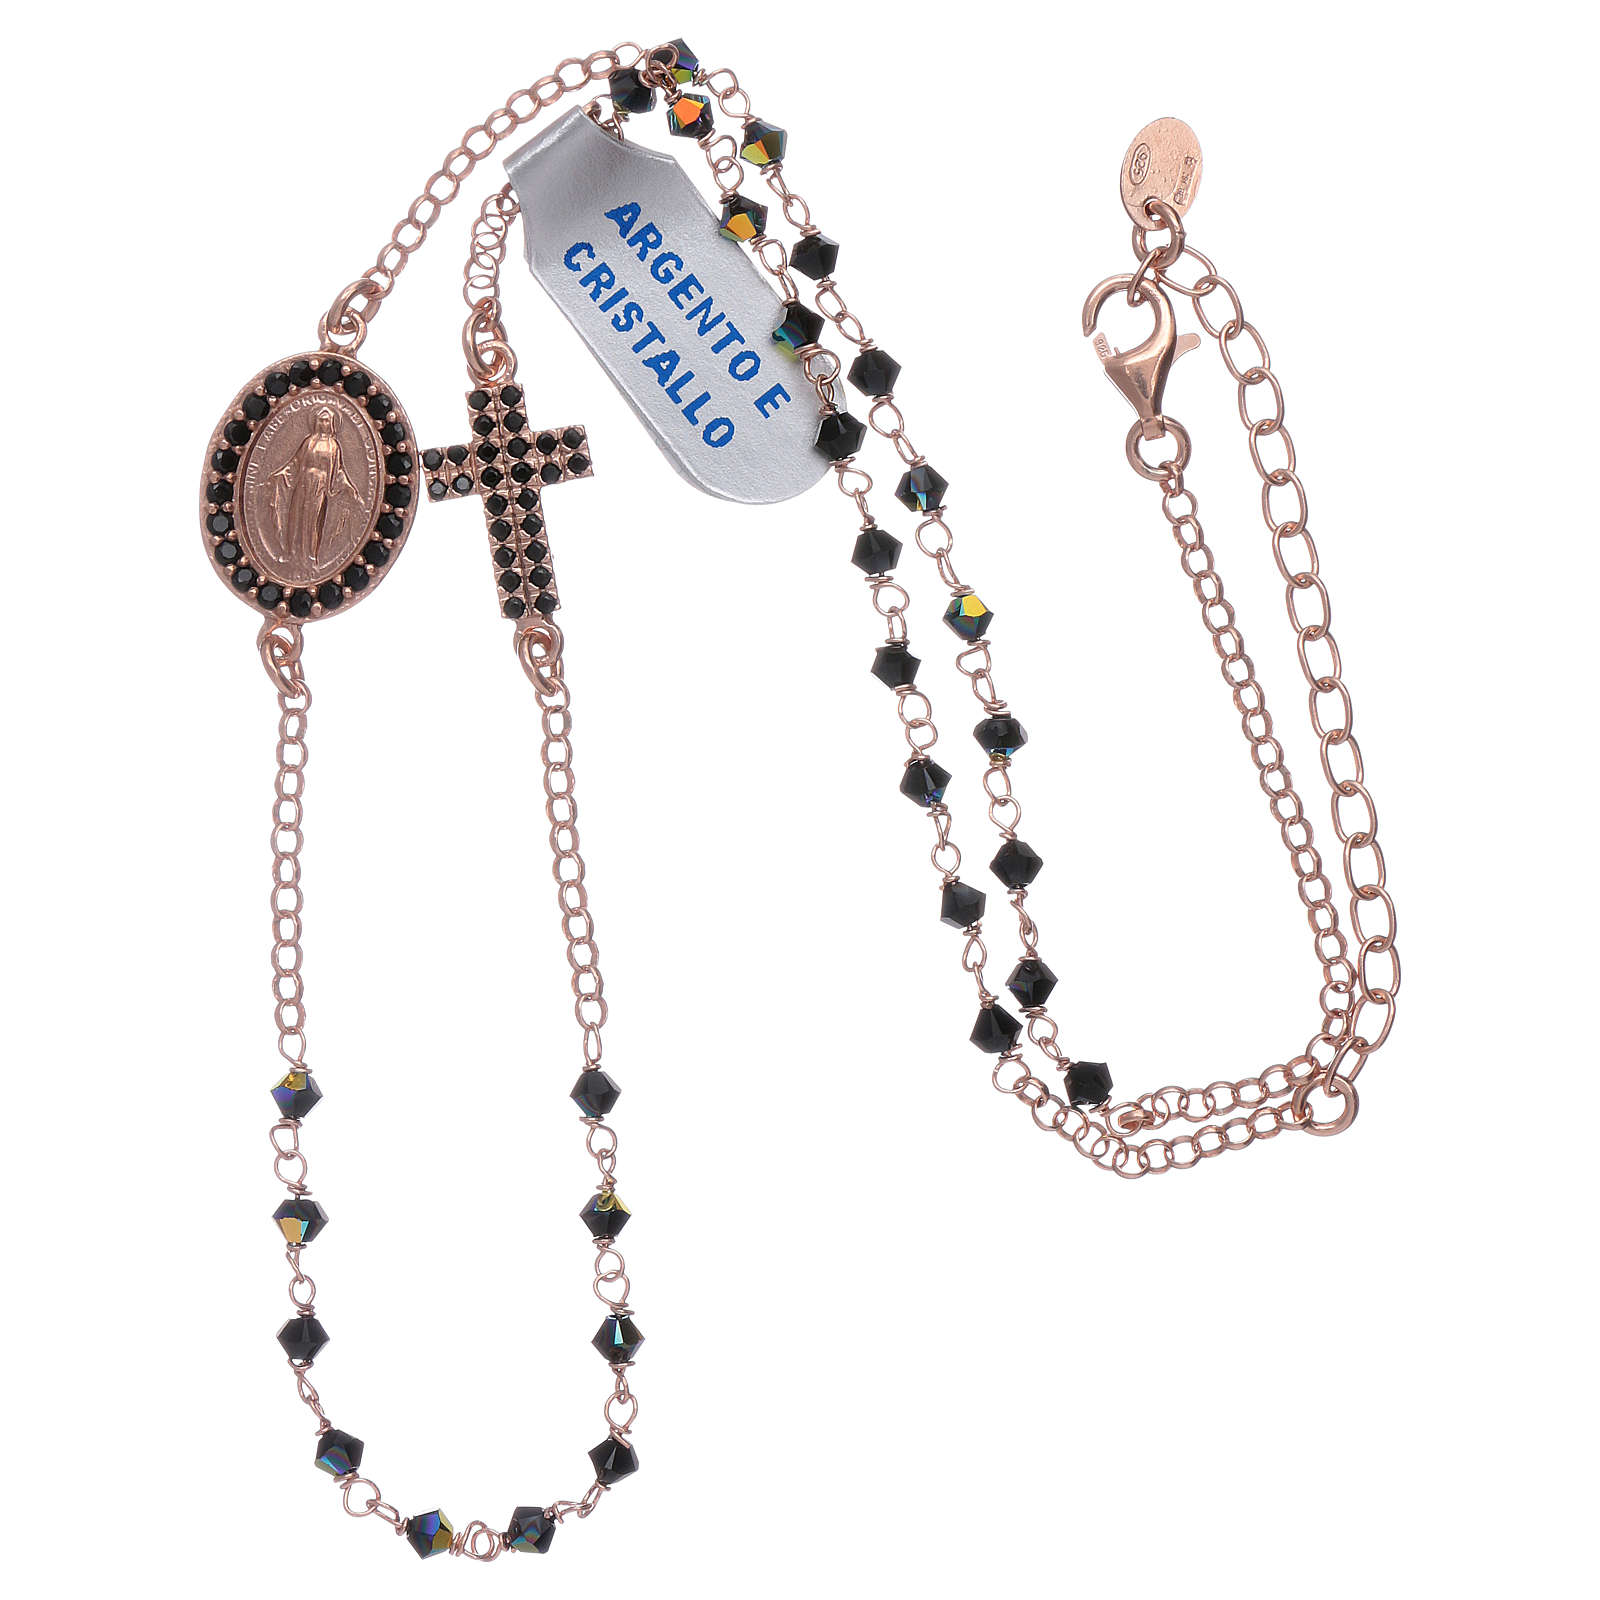 Our Lady of Miracles necklace with cross made of 925 sterling silver finished in rosè and zircons 4